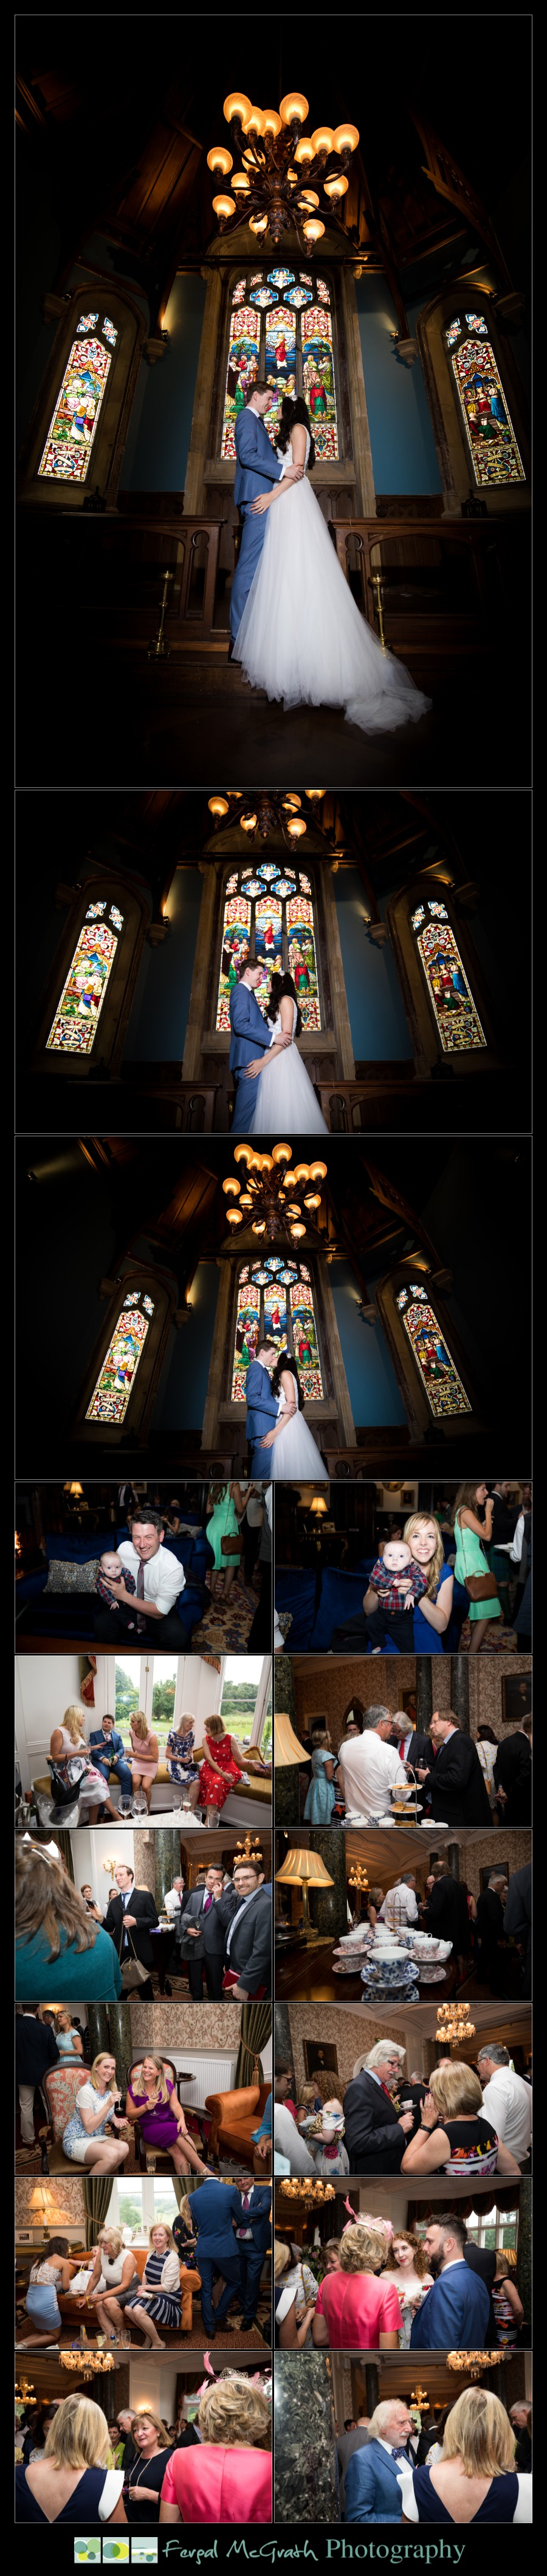 Markree Castle Wedding photos on the amazing staircase